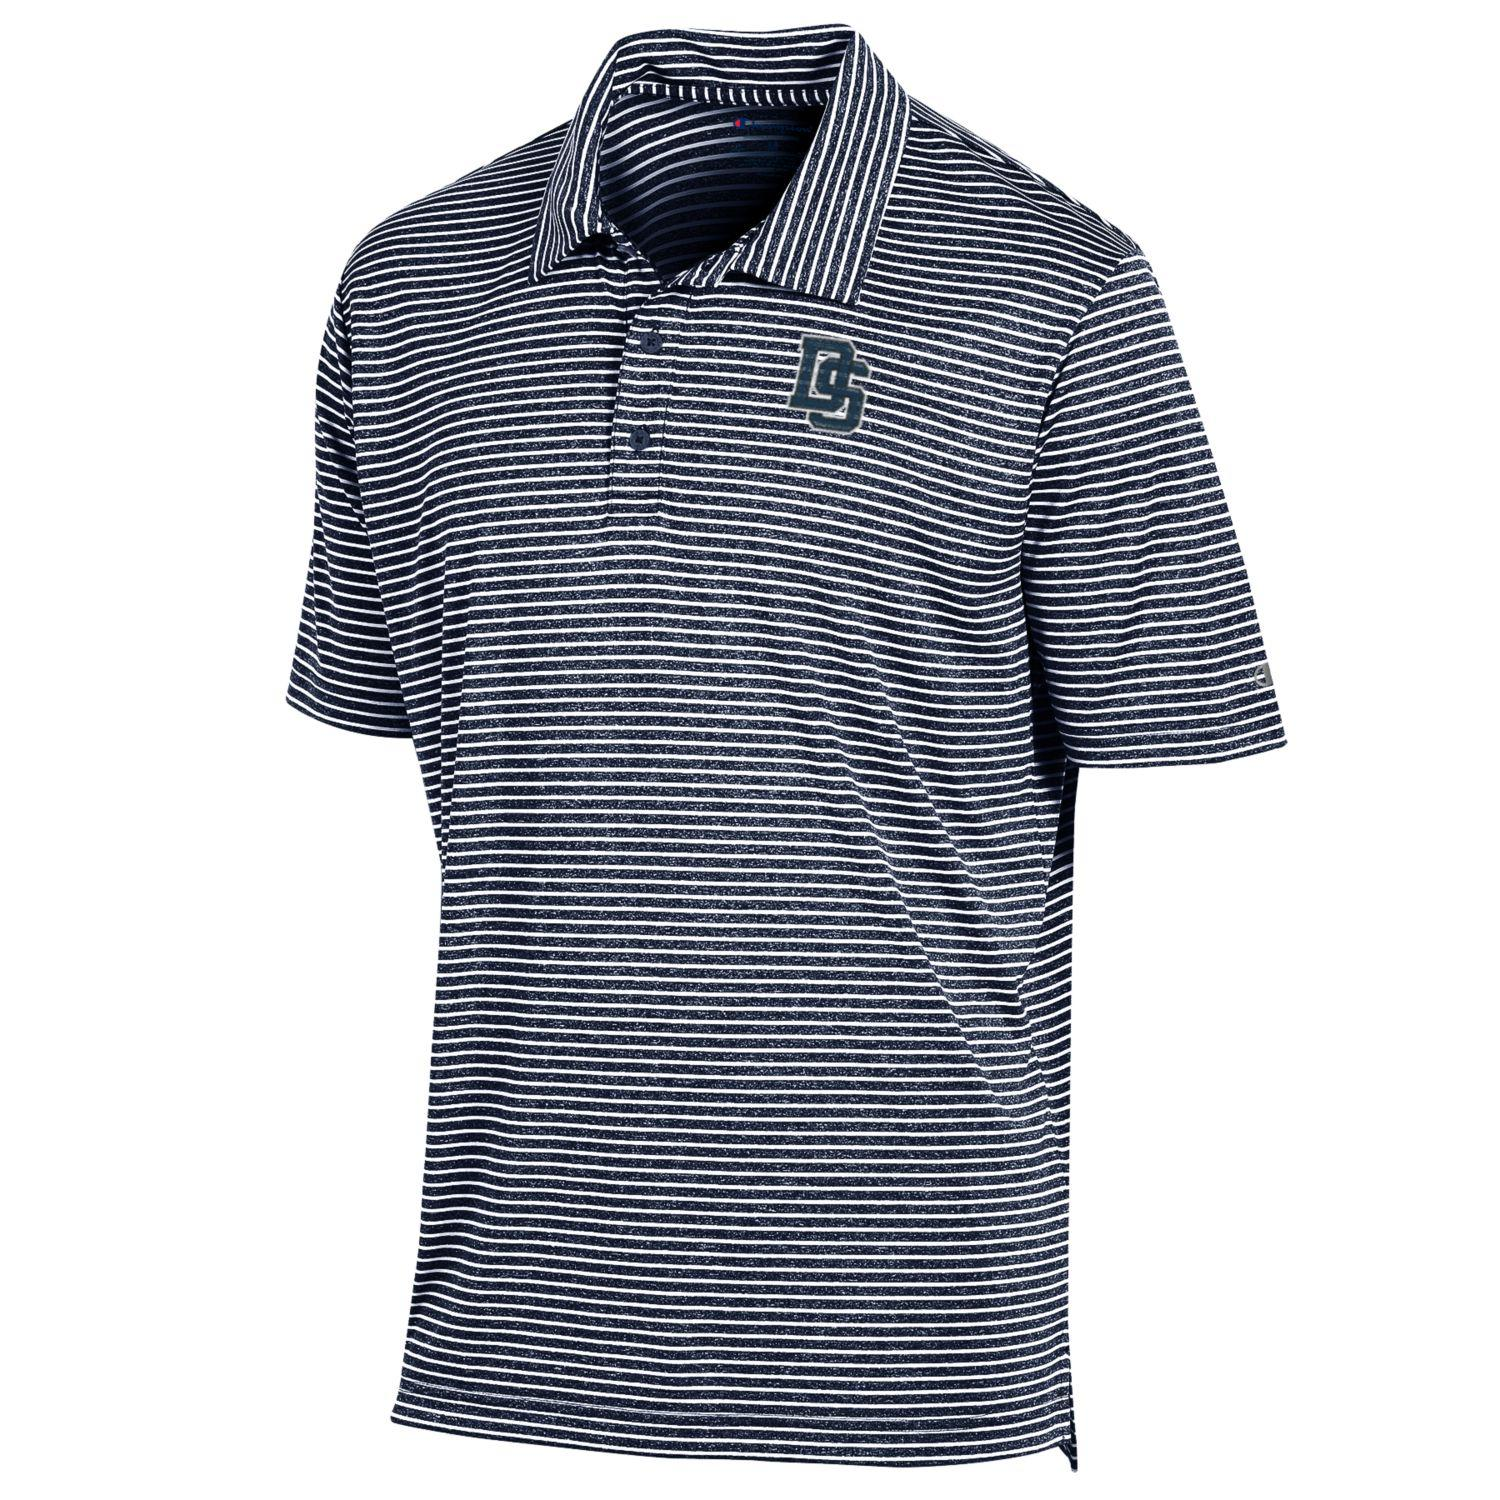 DS Logo Men's Stadium Stripe Polo